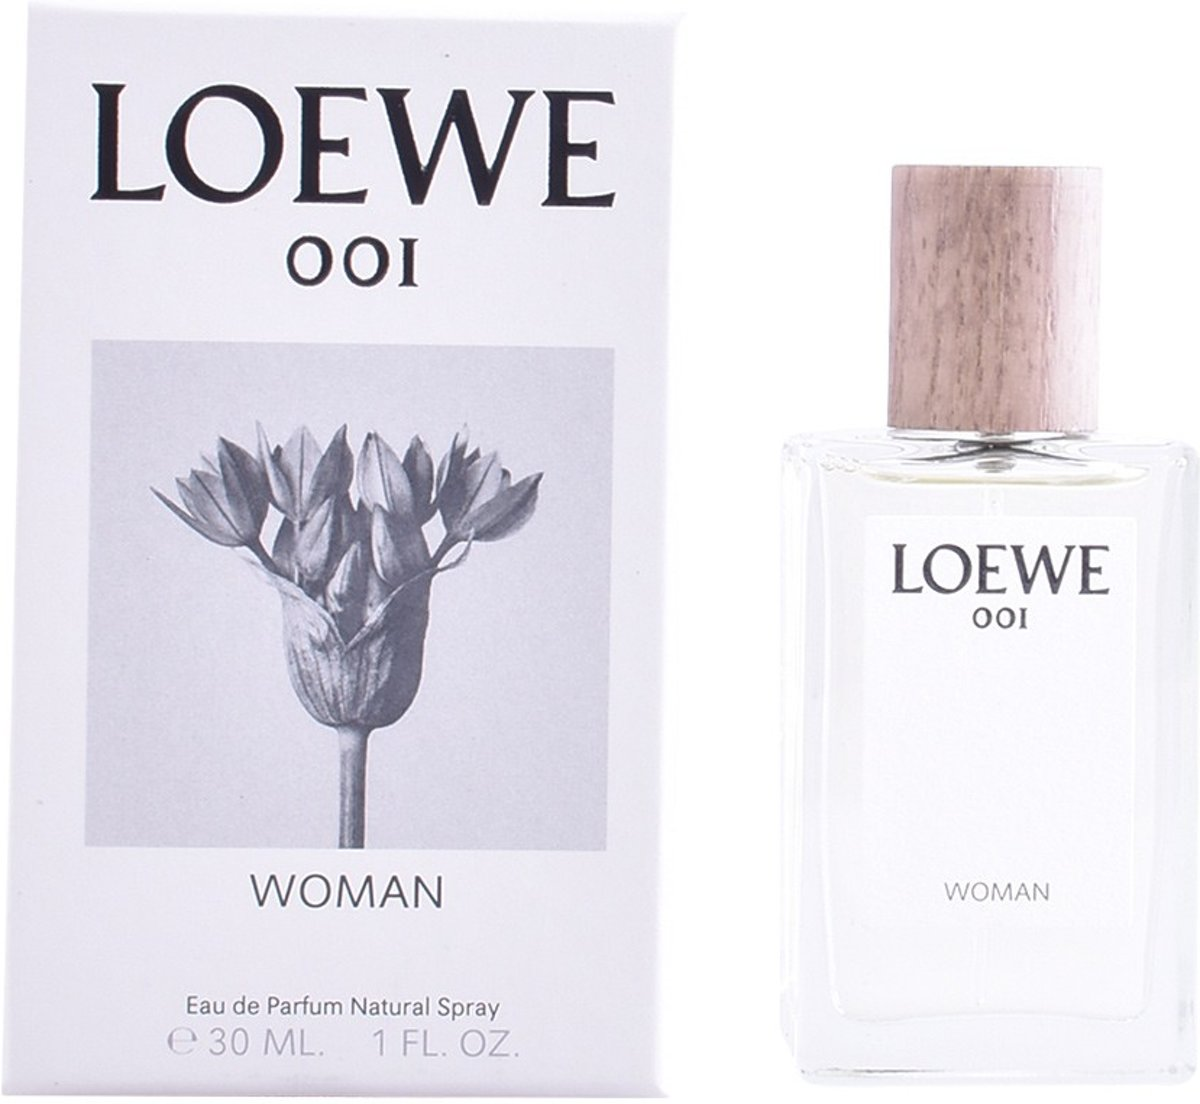 MULTI BUNDEL 2 stuks LOEWE 001 WOMAN Eau de Perfume Spray 30 ml